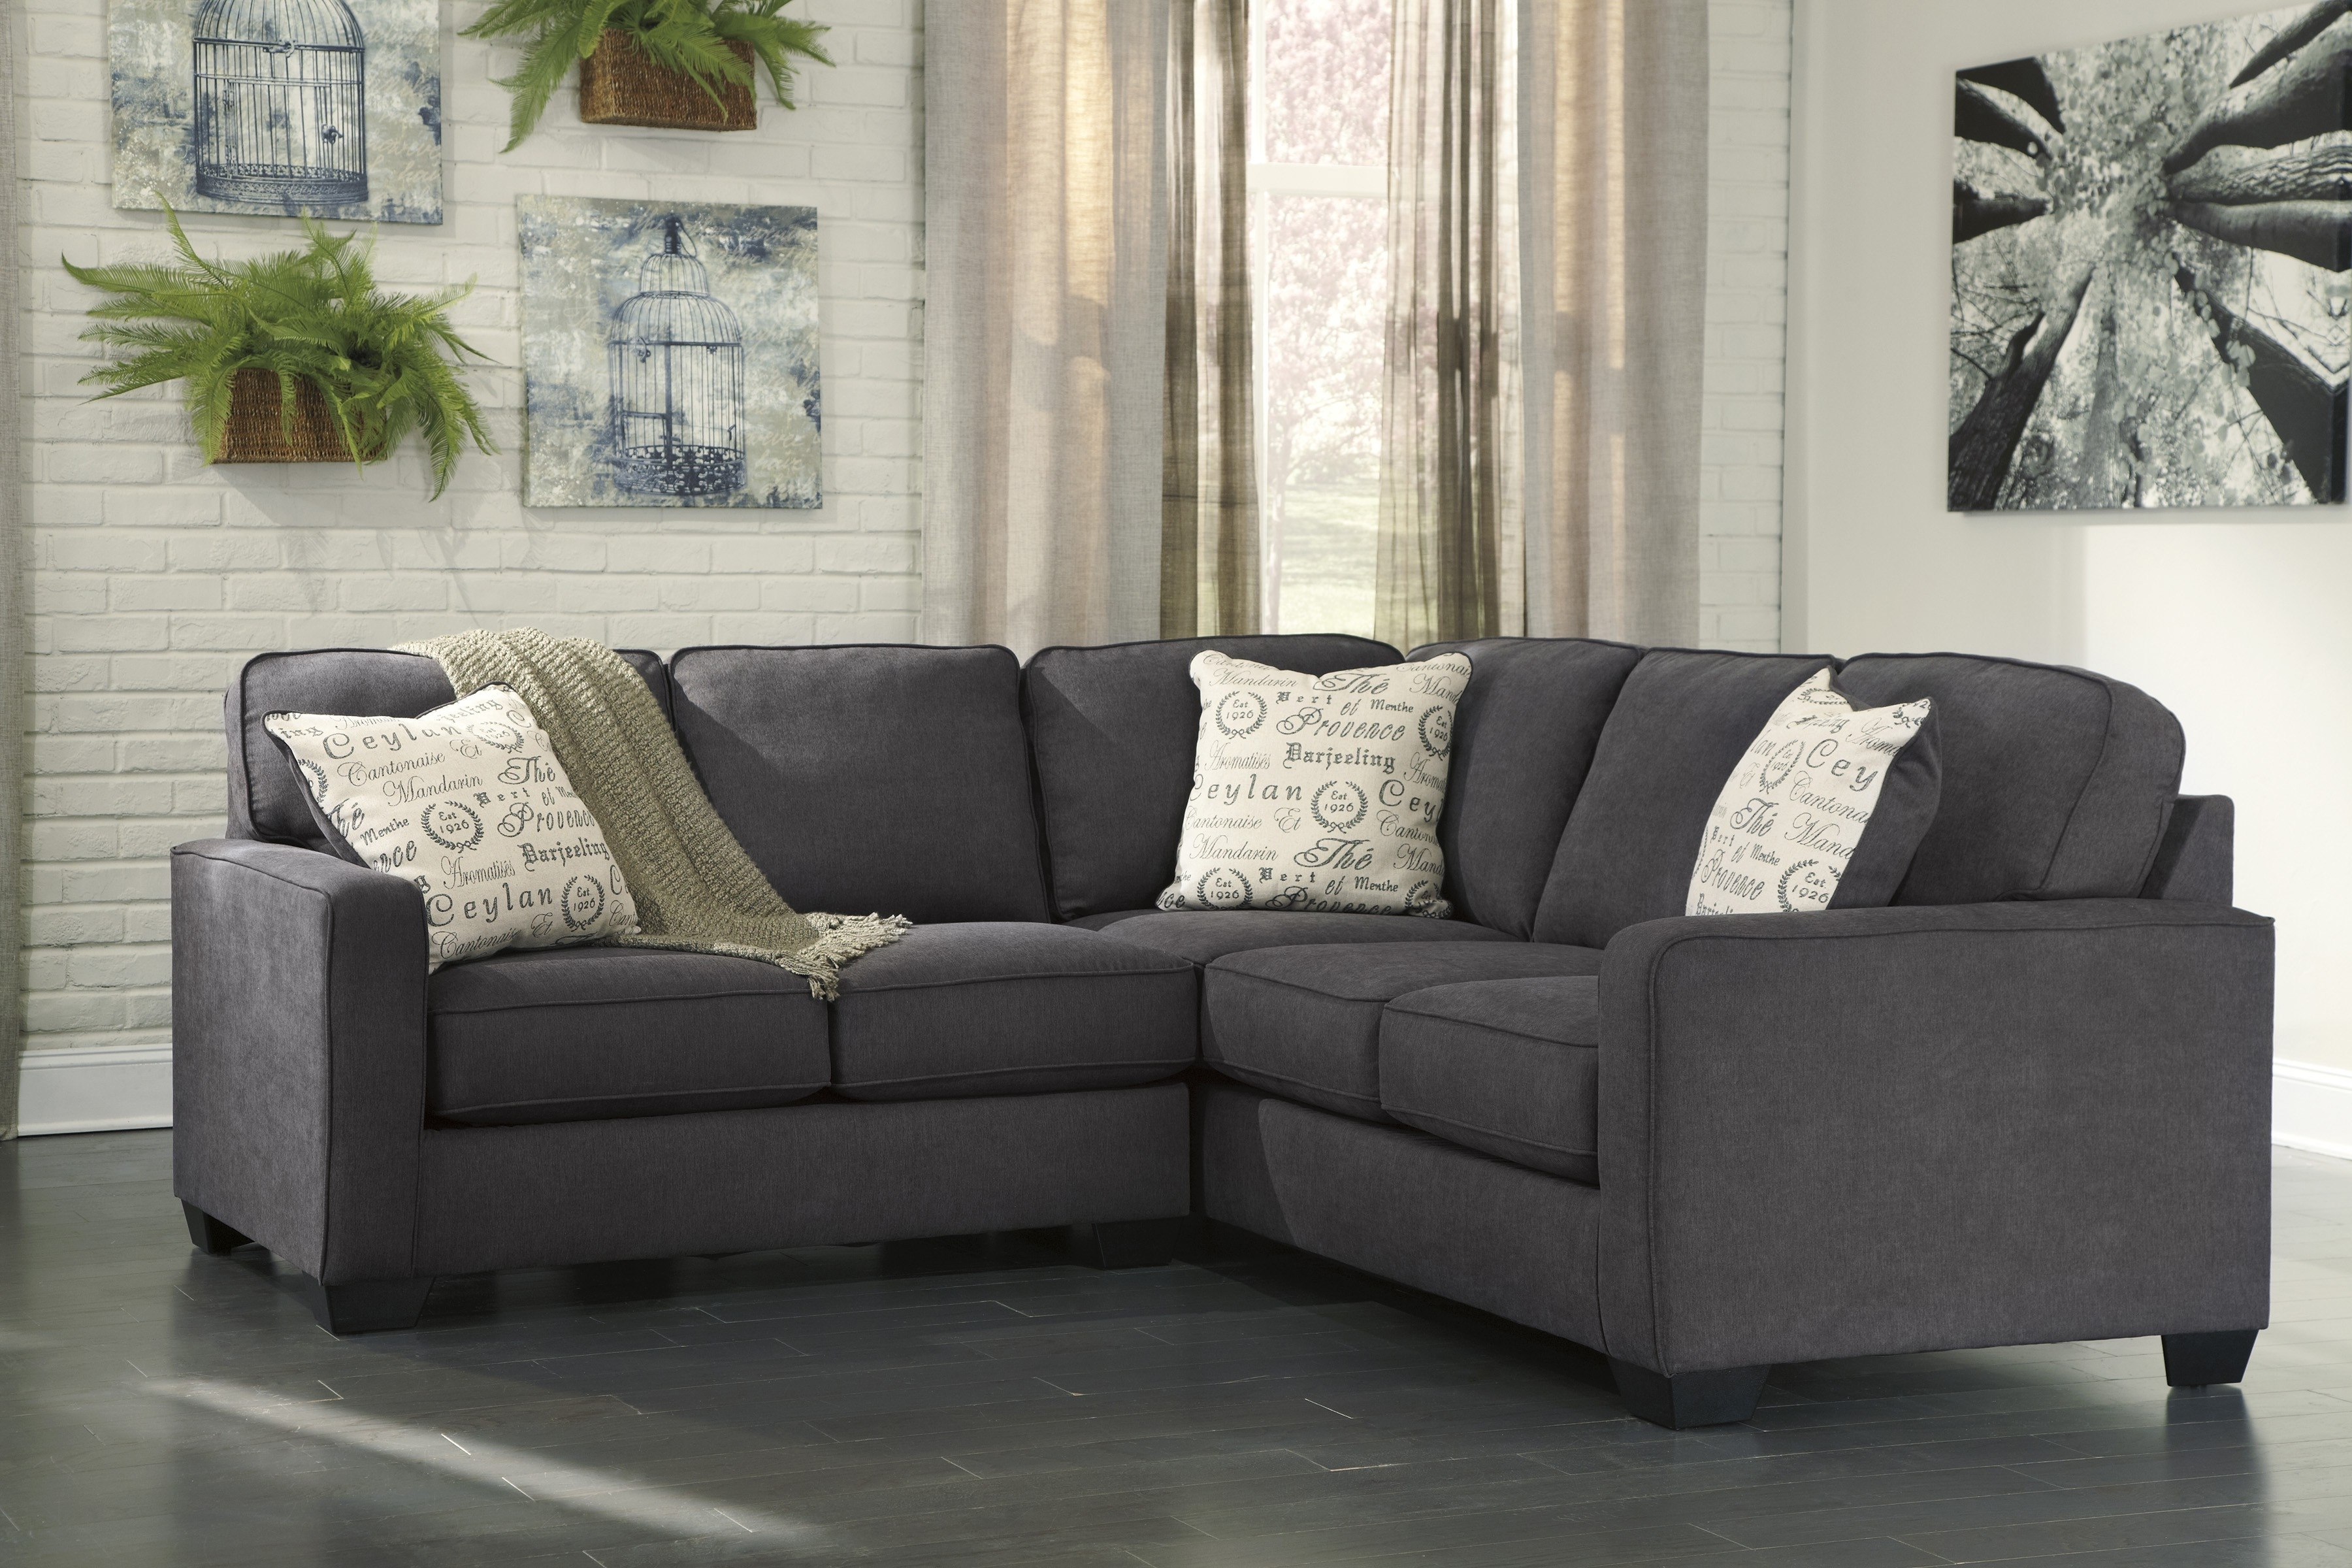 Sectional Sofas That Come In Pieces Within Latest Alenya Charcoal 2 Piece Sectional Sofa For $ (View 6 of 20)